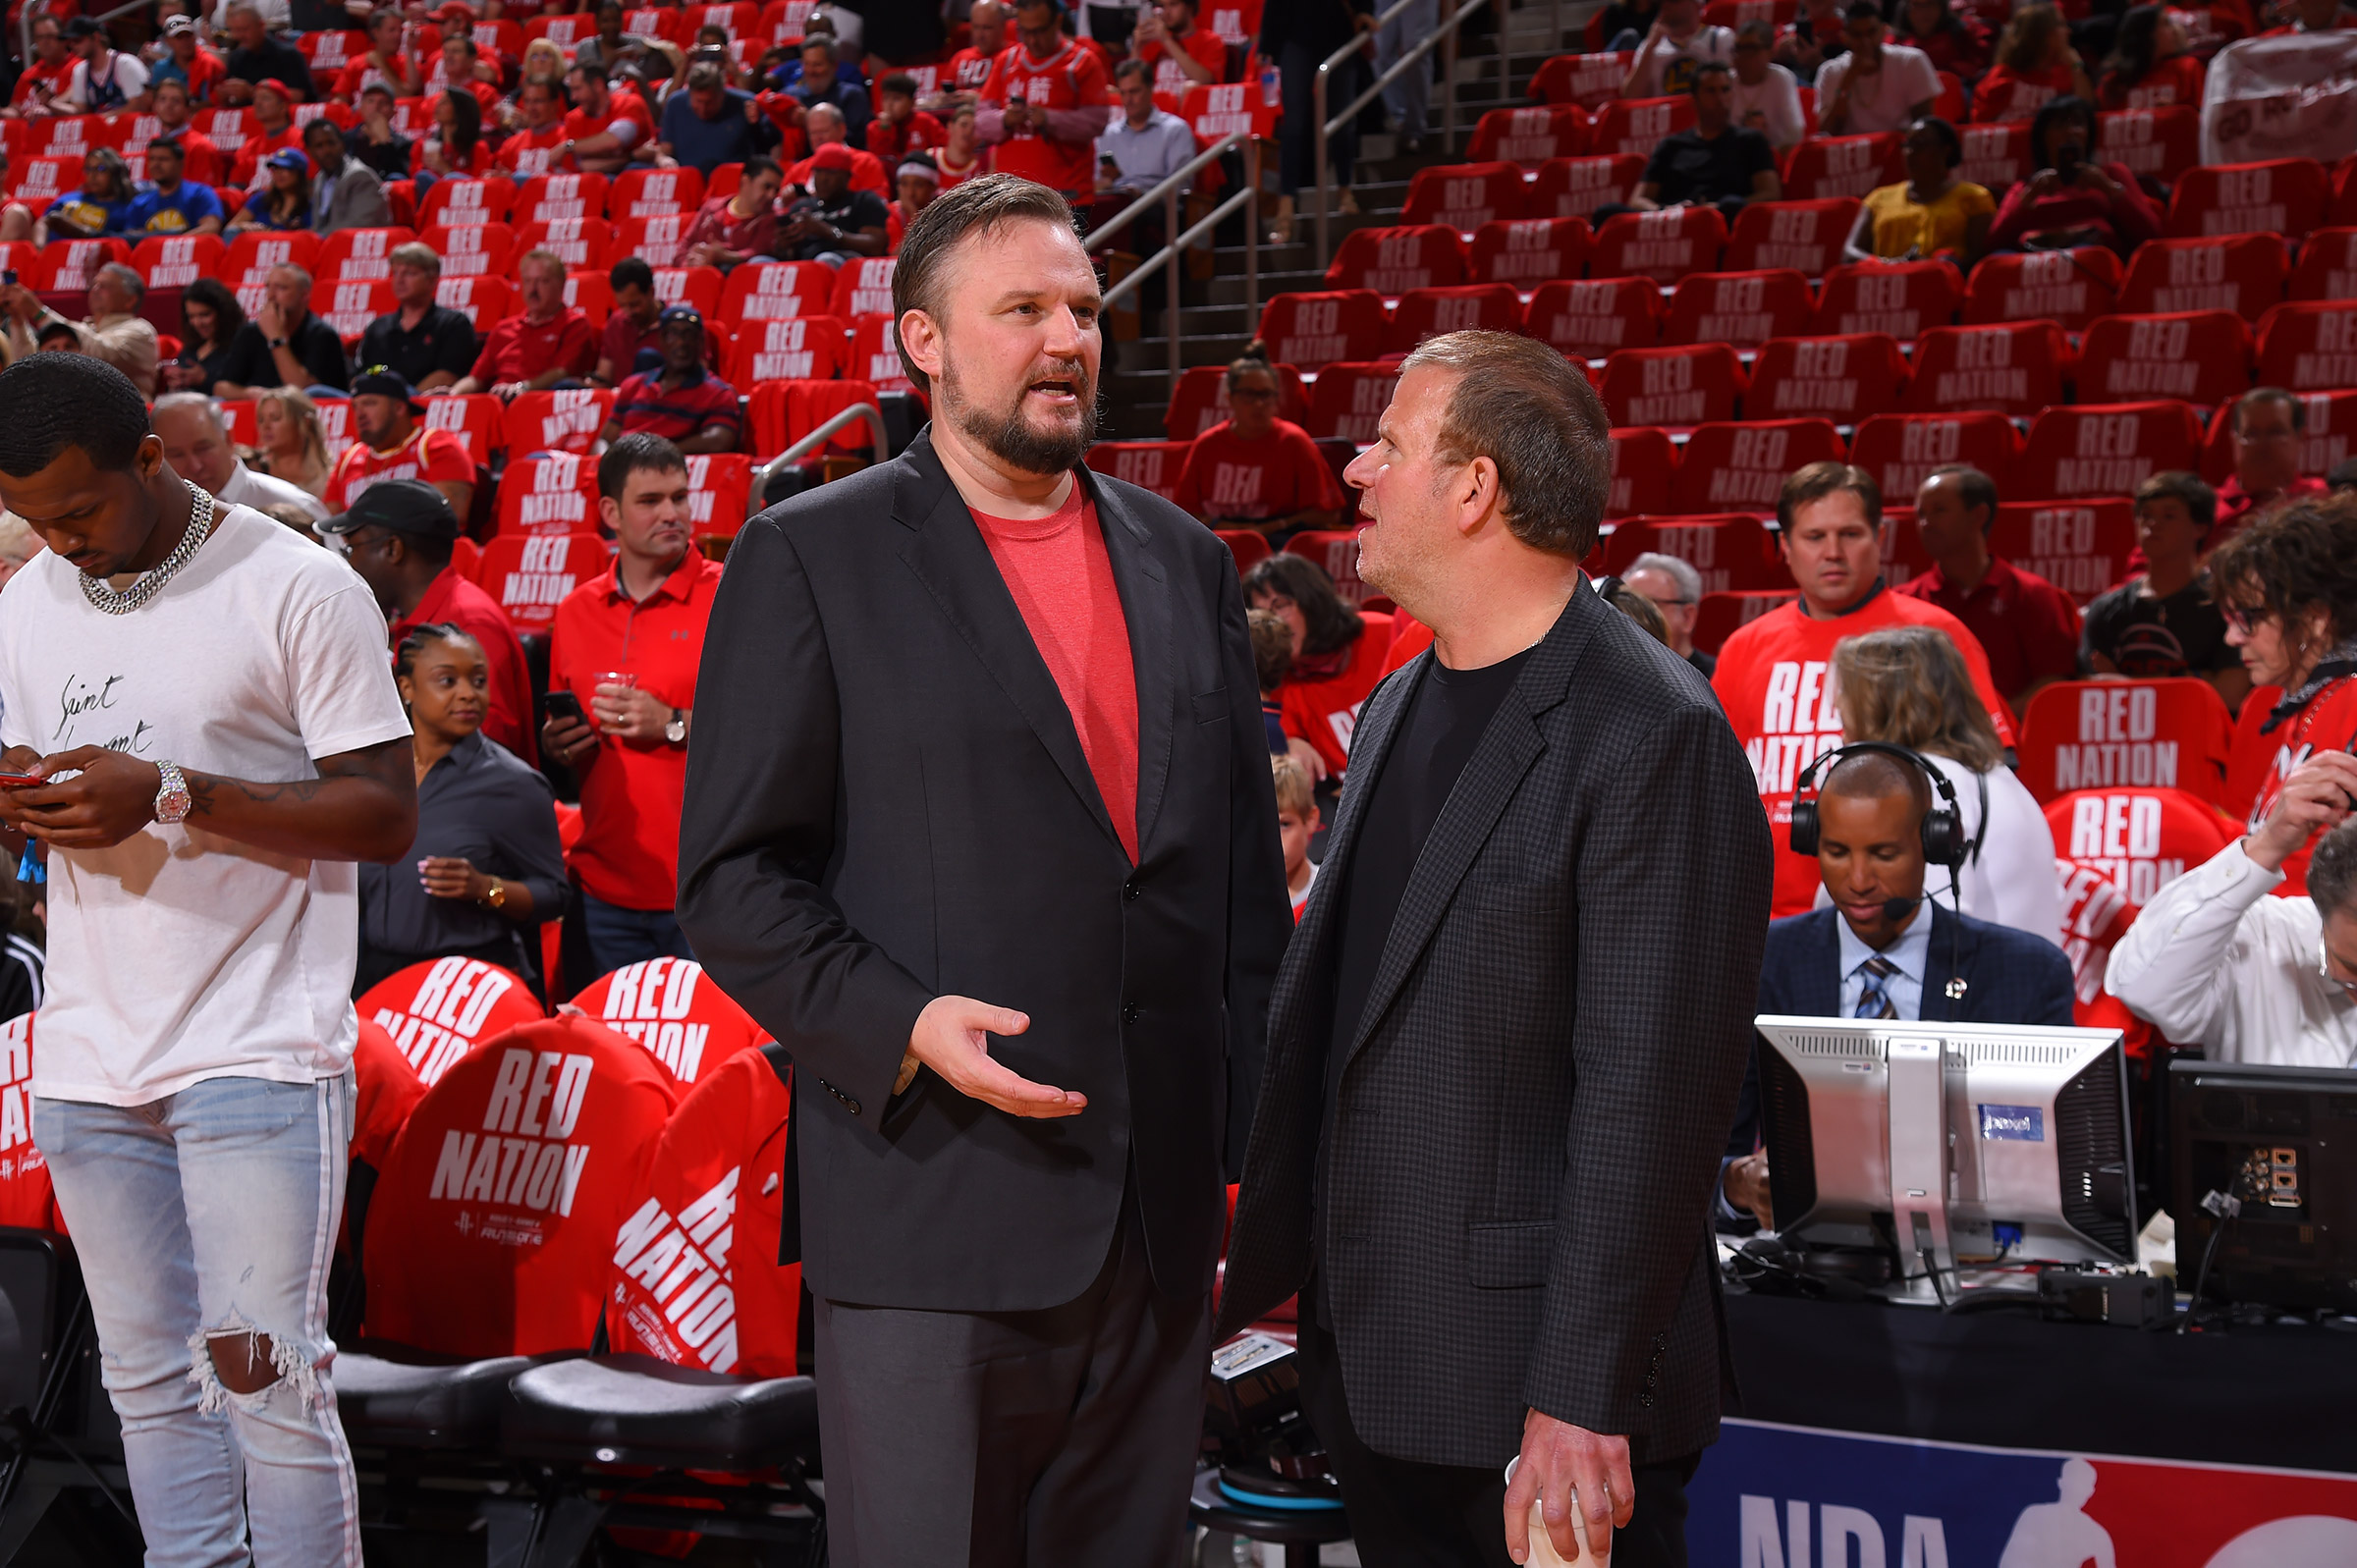 Houston Rockets General Manager Daryl Morey and Houston Rockets owner Tilman Fertitta speak during Game Four of the Western Conference Semifinals of the 2019 NBA Playoffs on May 6, 2019 in Houston.